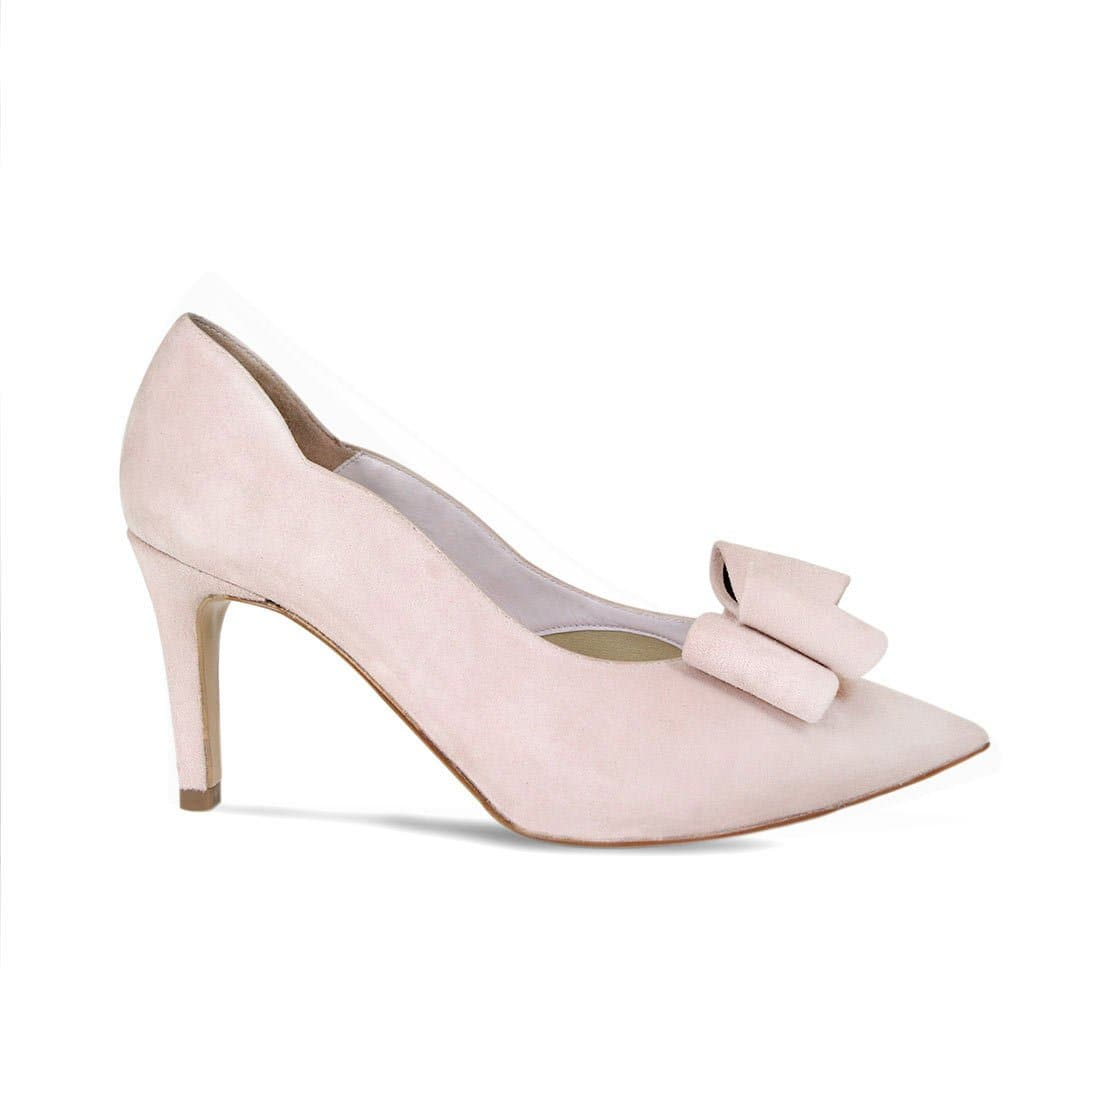 Blush Suede High Heel with a Bow